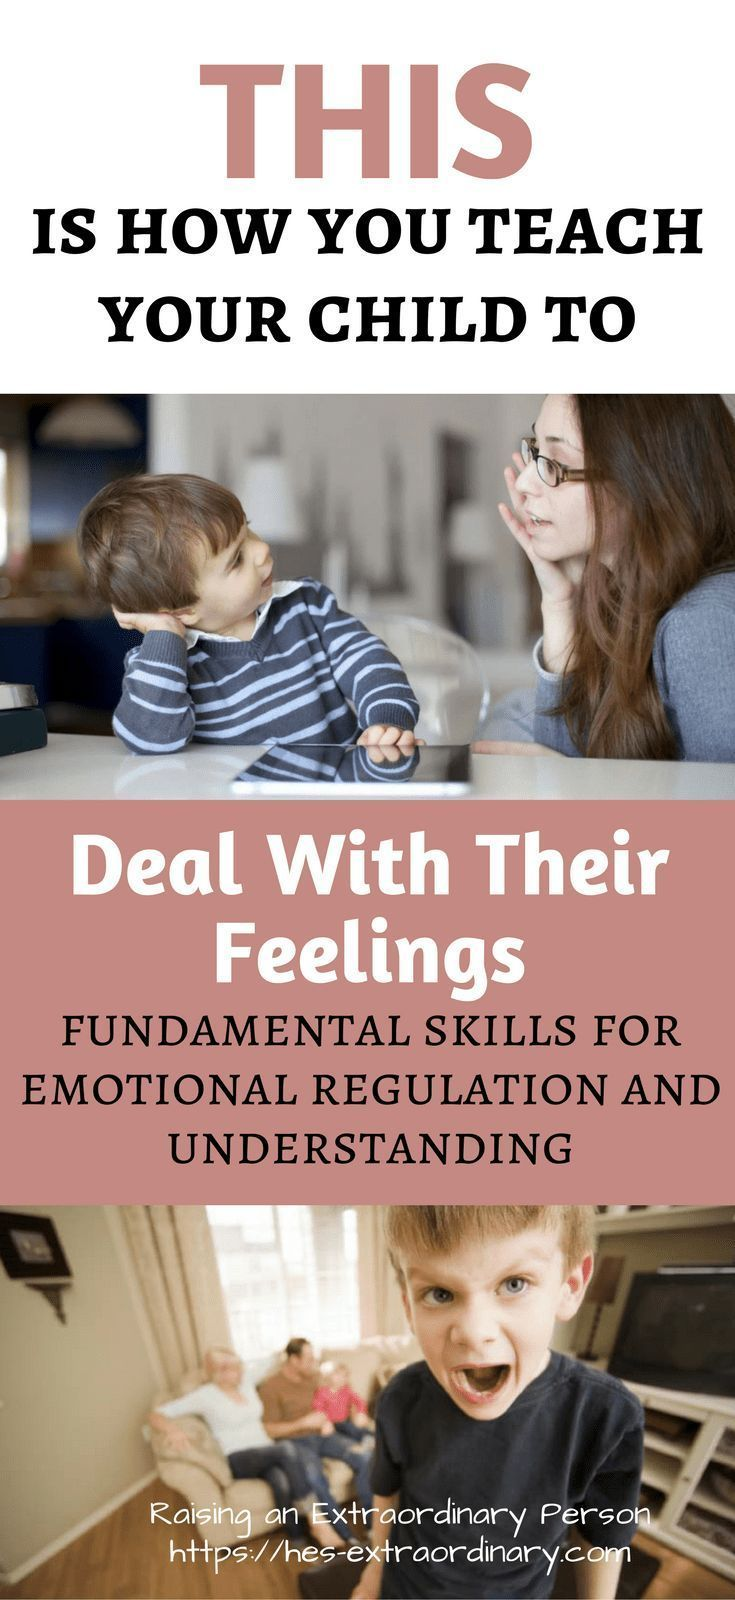 Helping Children Deal With Their Feelings #selfregulation #adhd #autism